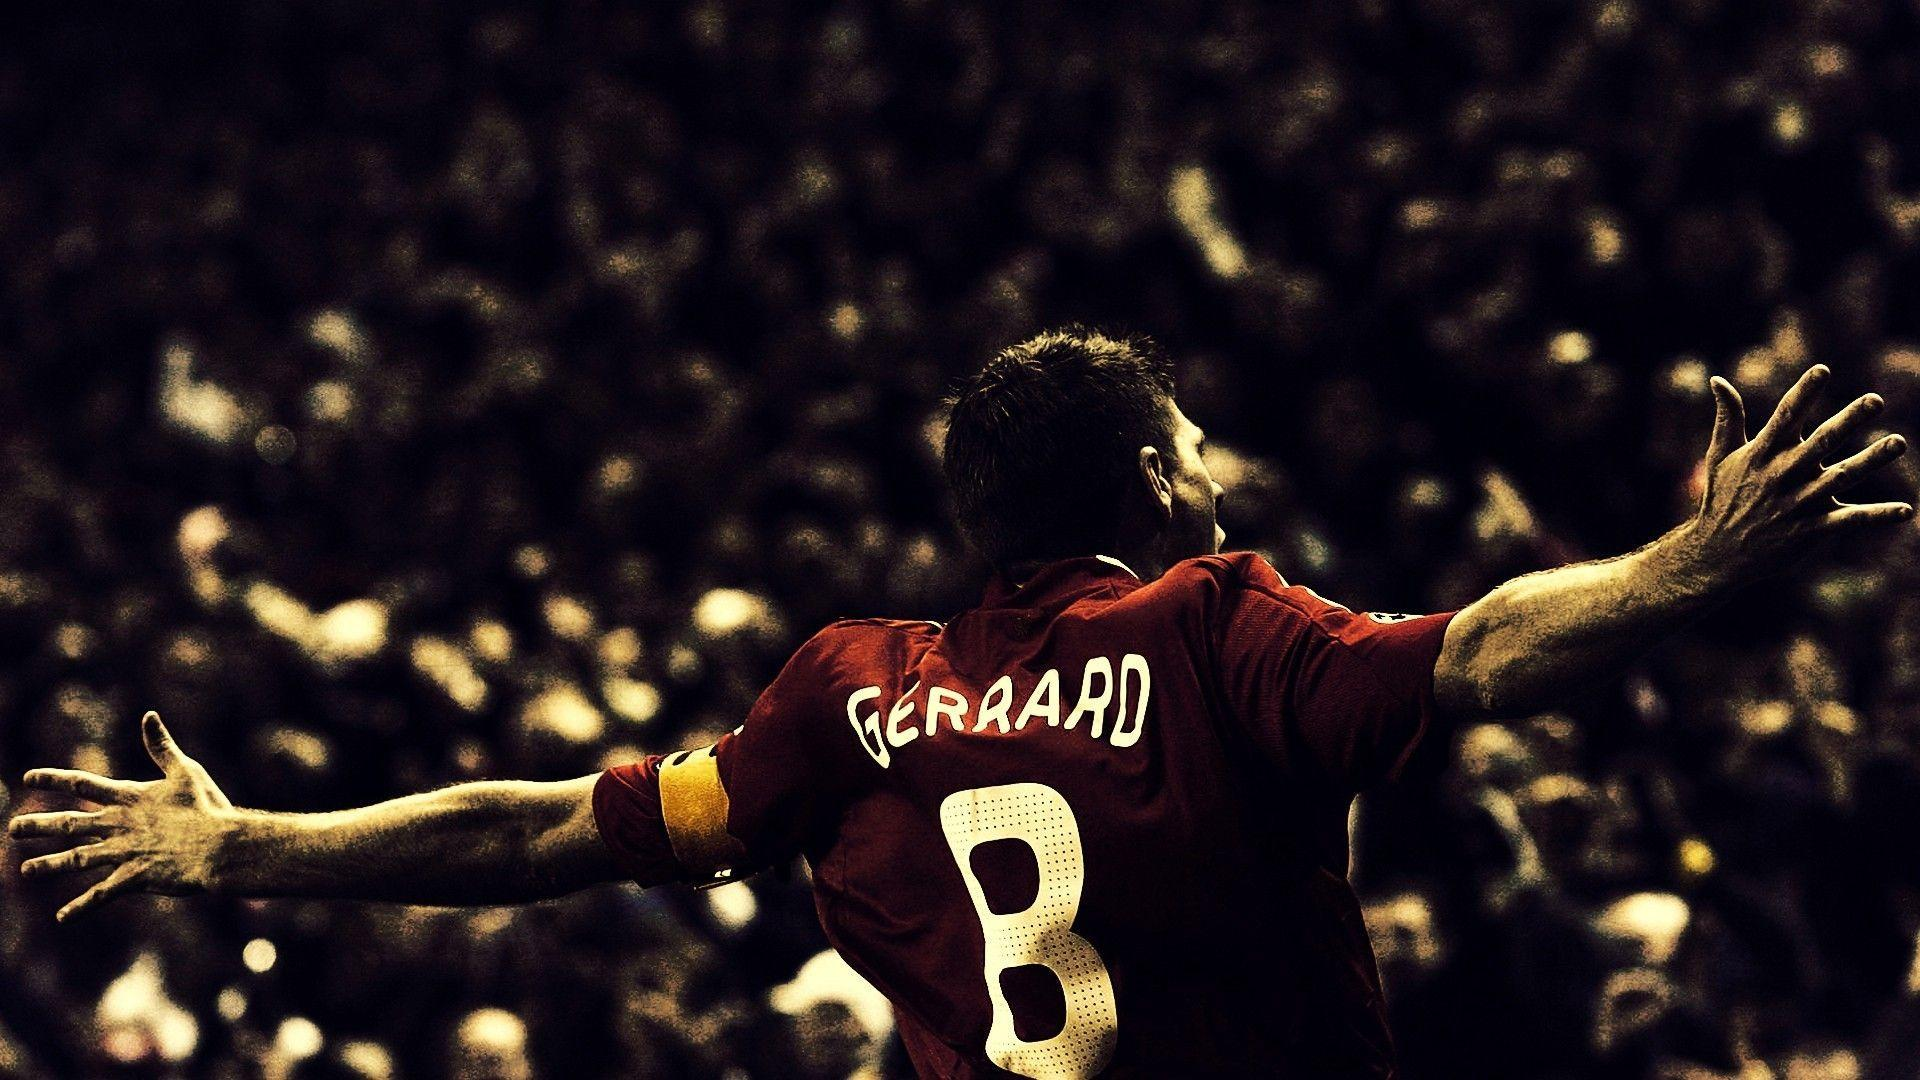 liverpool wallpapers for pc - photo #33